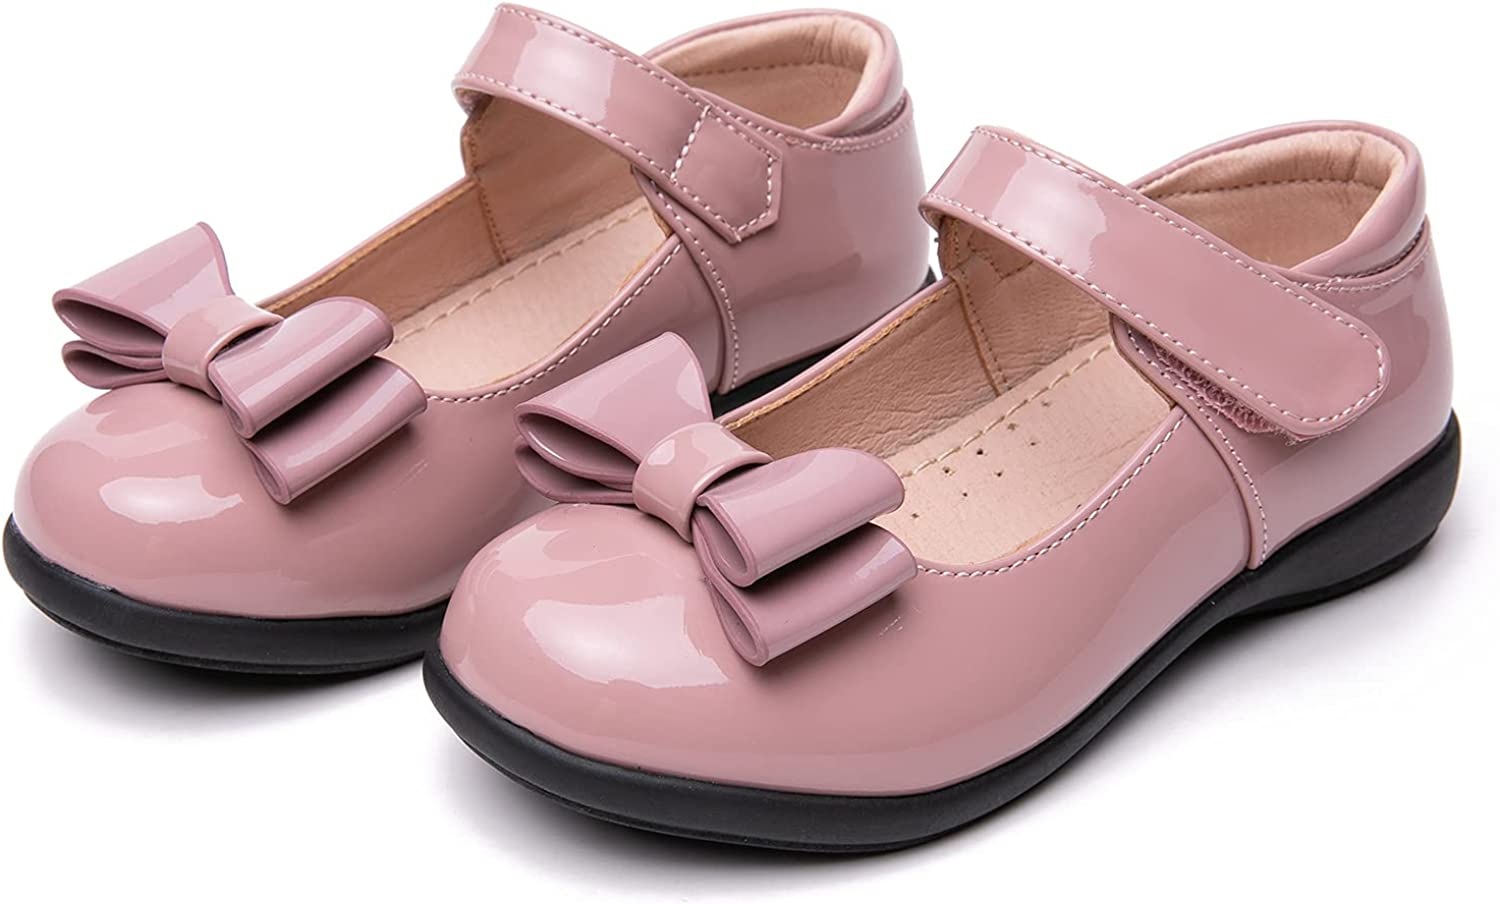 youngshow Girl's Mary Jane Flats Bow Hook-and-Loop Fastener Ballet Flat School Uniform Dress Shoes for Girls